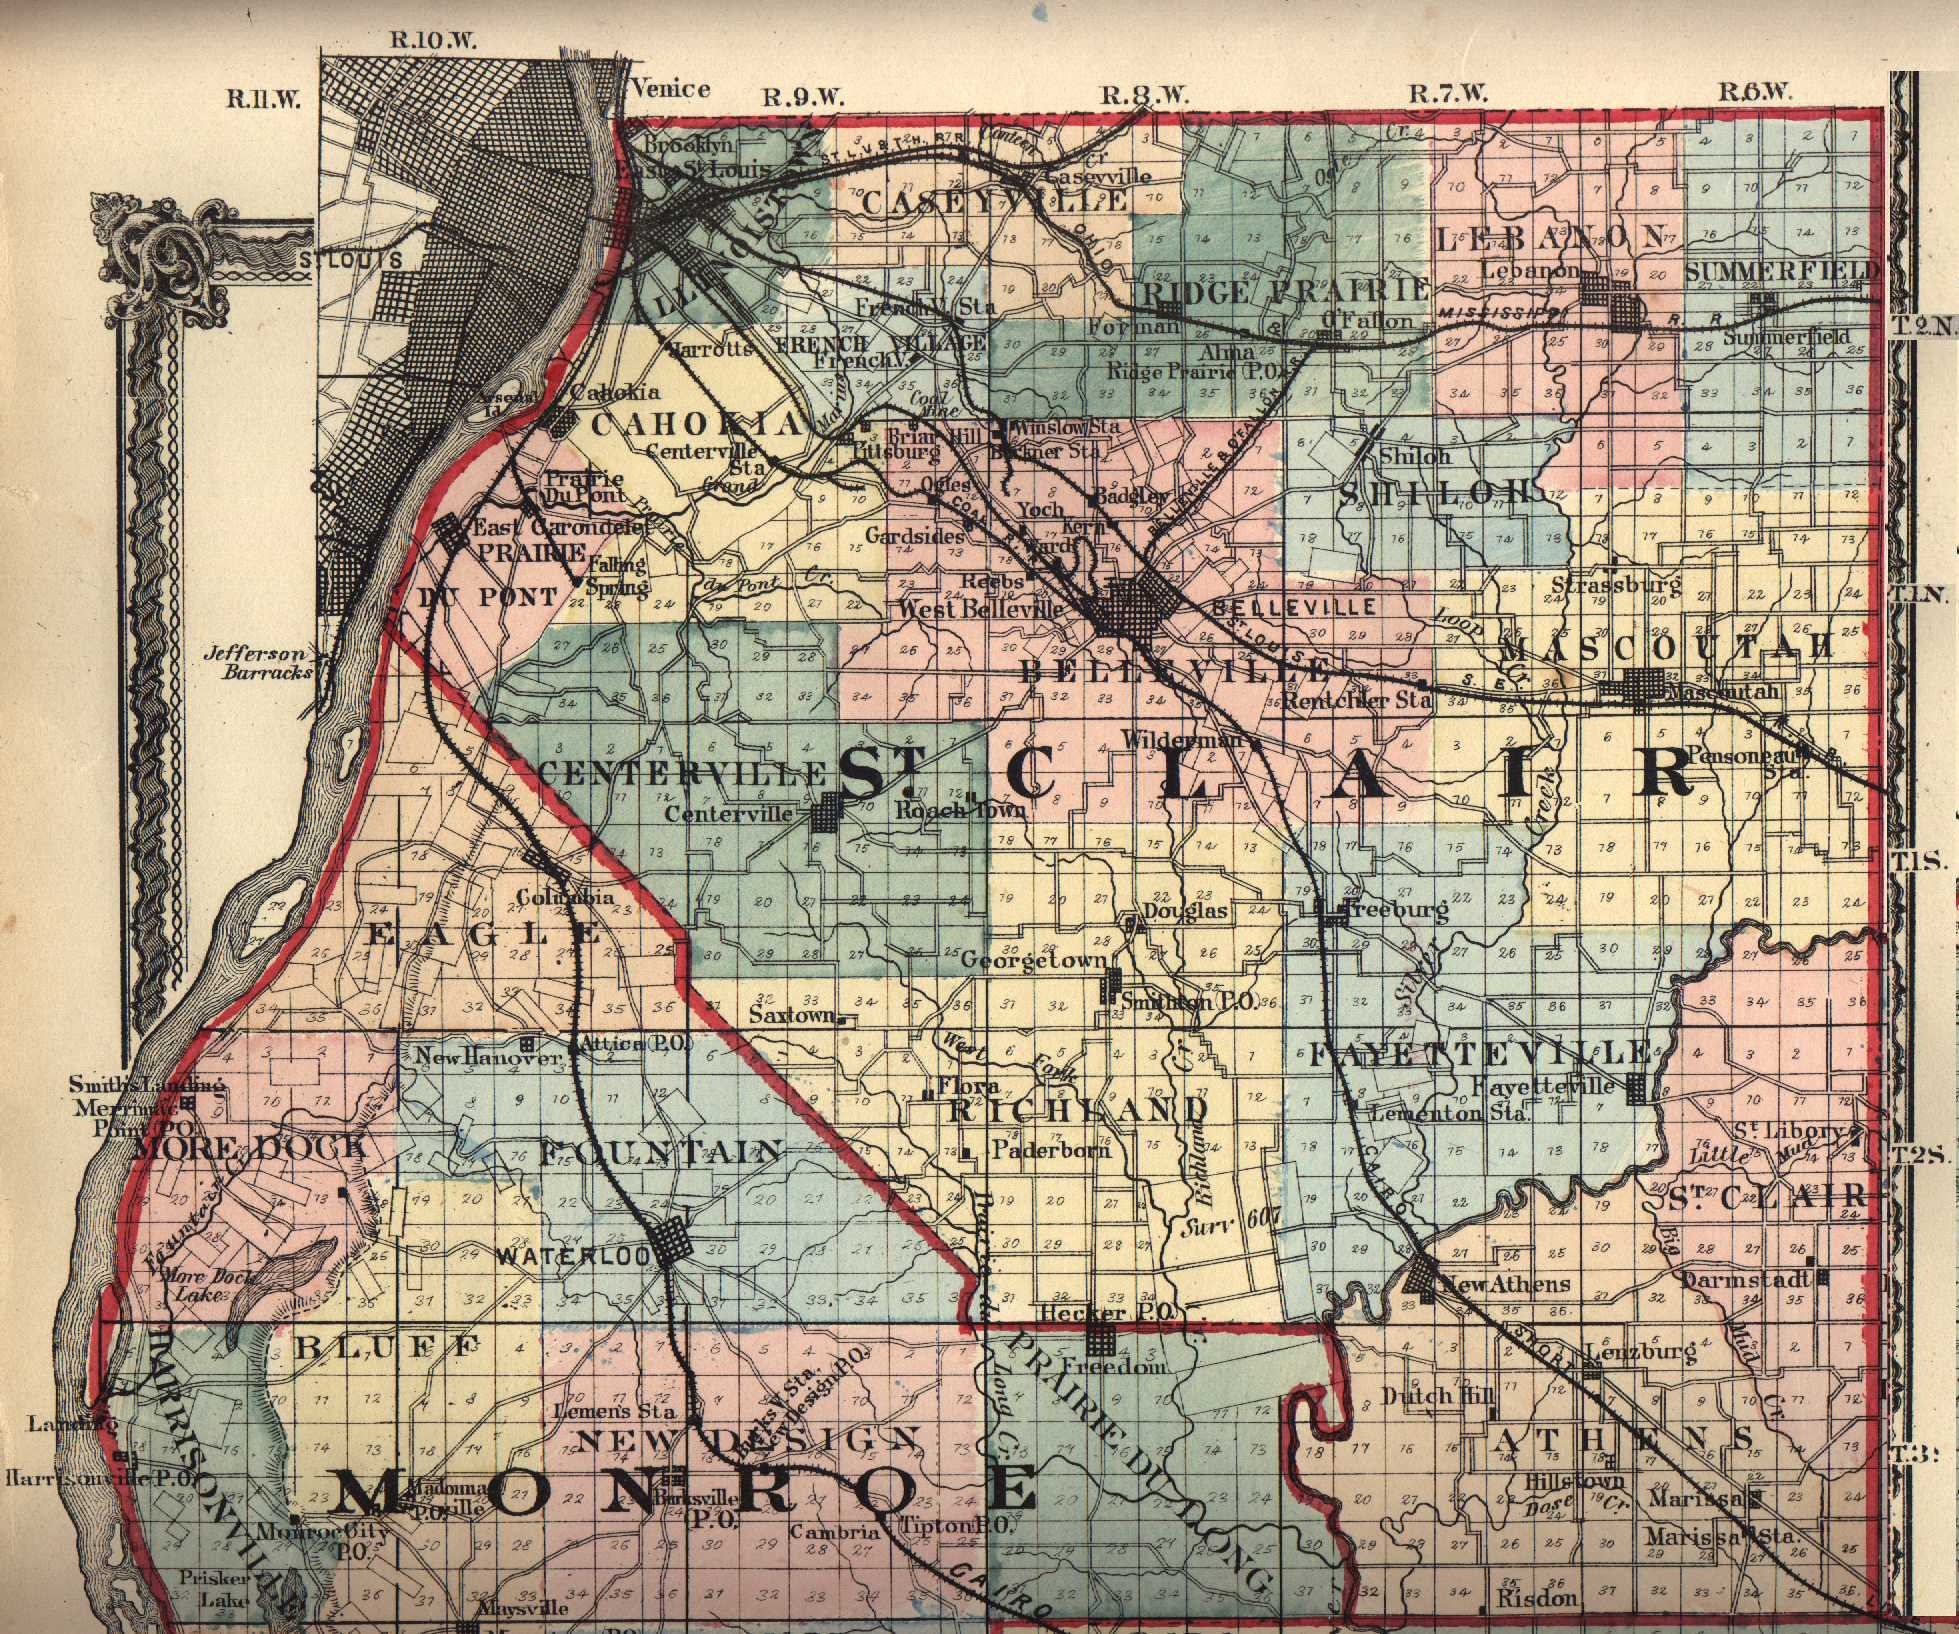 Saint clair county illinois maps and gazetteers 1875 st clair county map source usgenweb illinois gumiabroncs Image collections